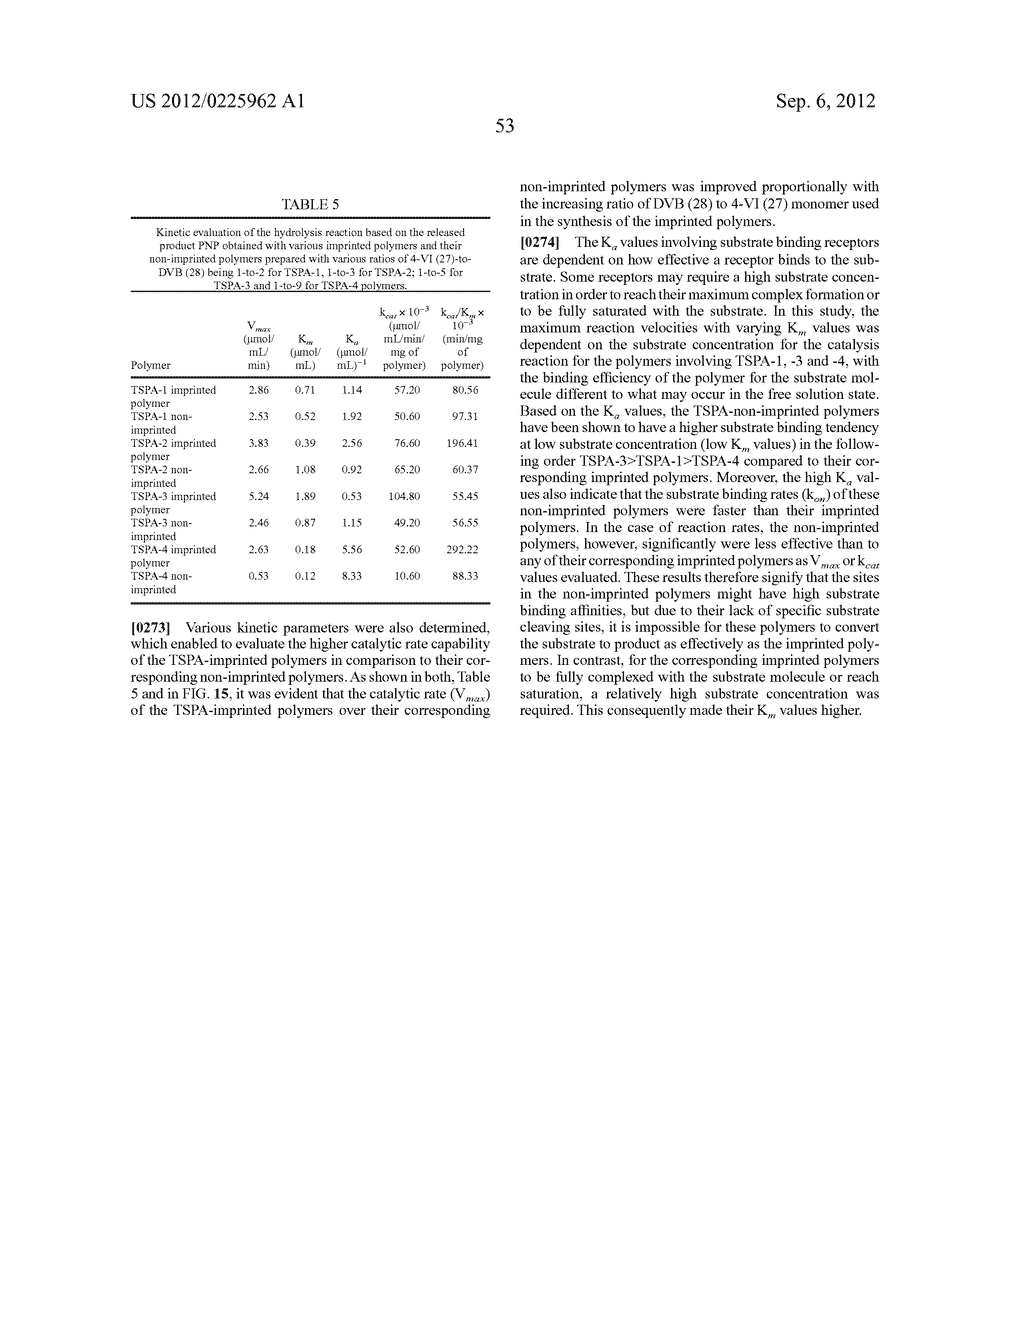 MOLECULARLY IMPRINTED POLYMERS, METHODS FOR THEIR PRODUCTION AND USES     THEREOF - diagram, schematic, and image 58